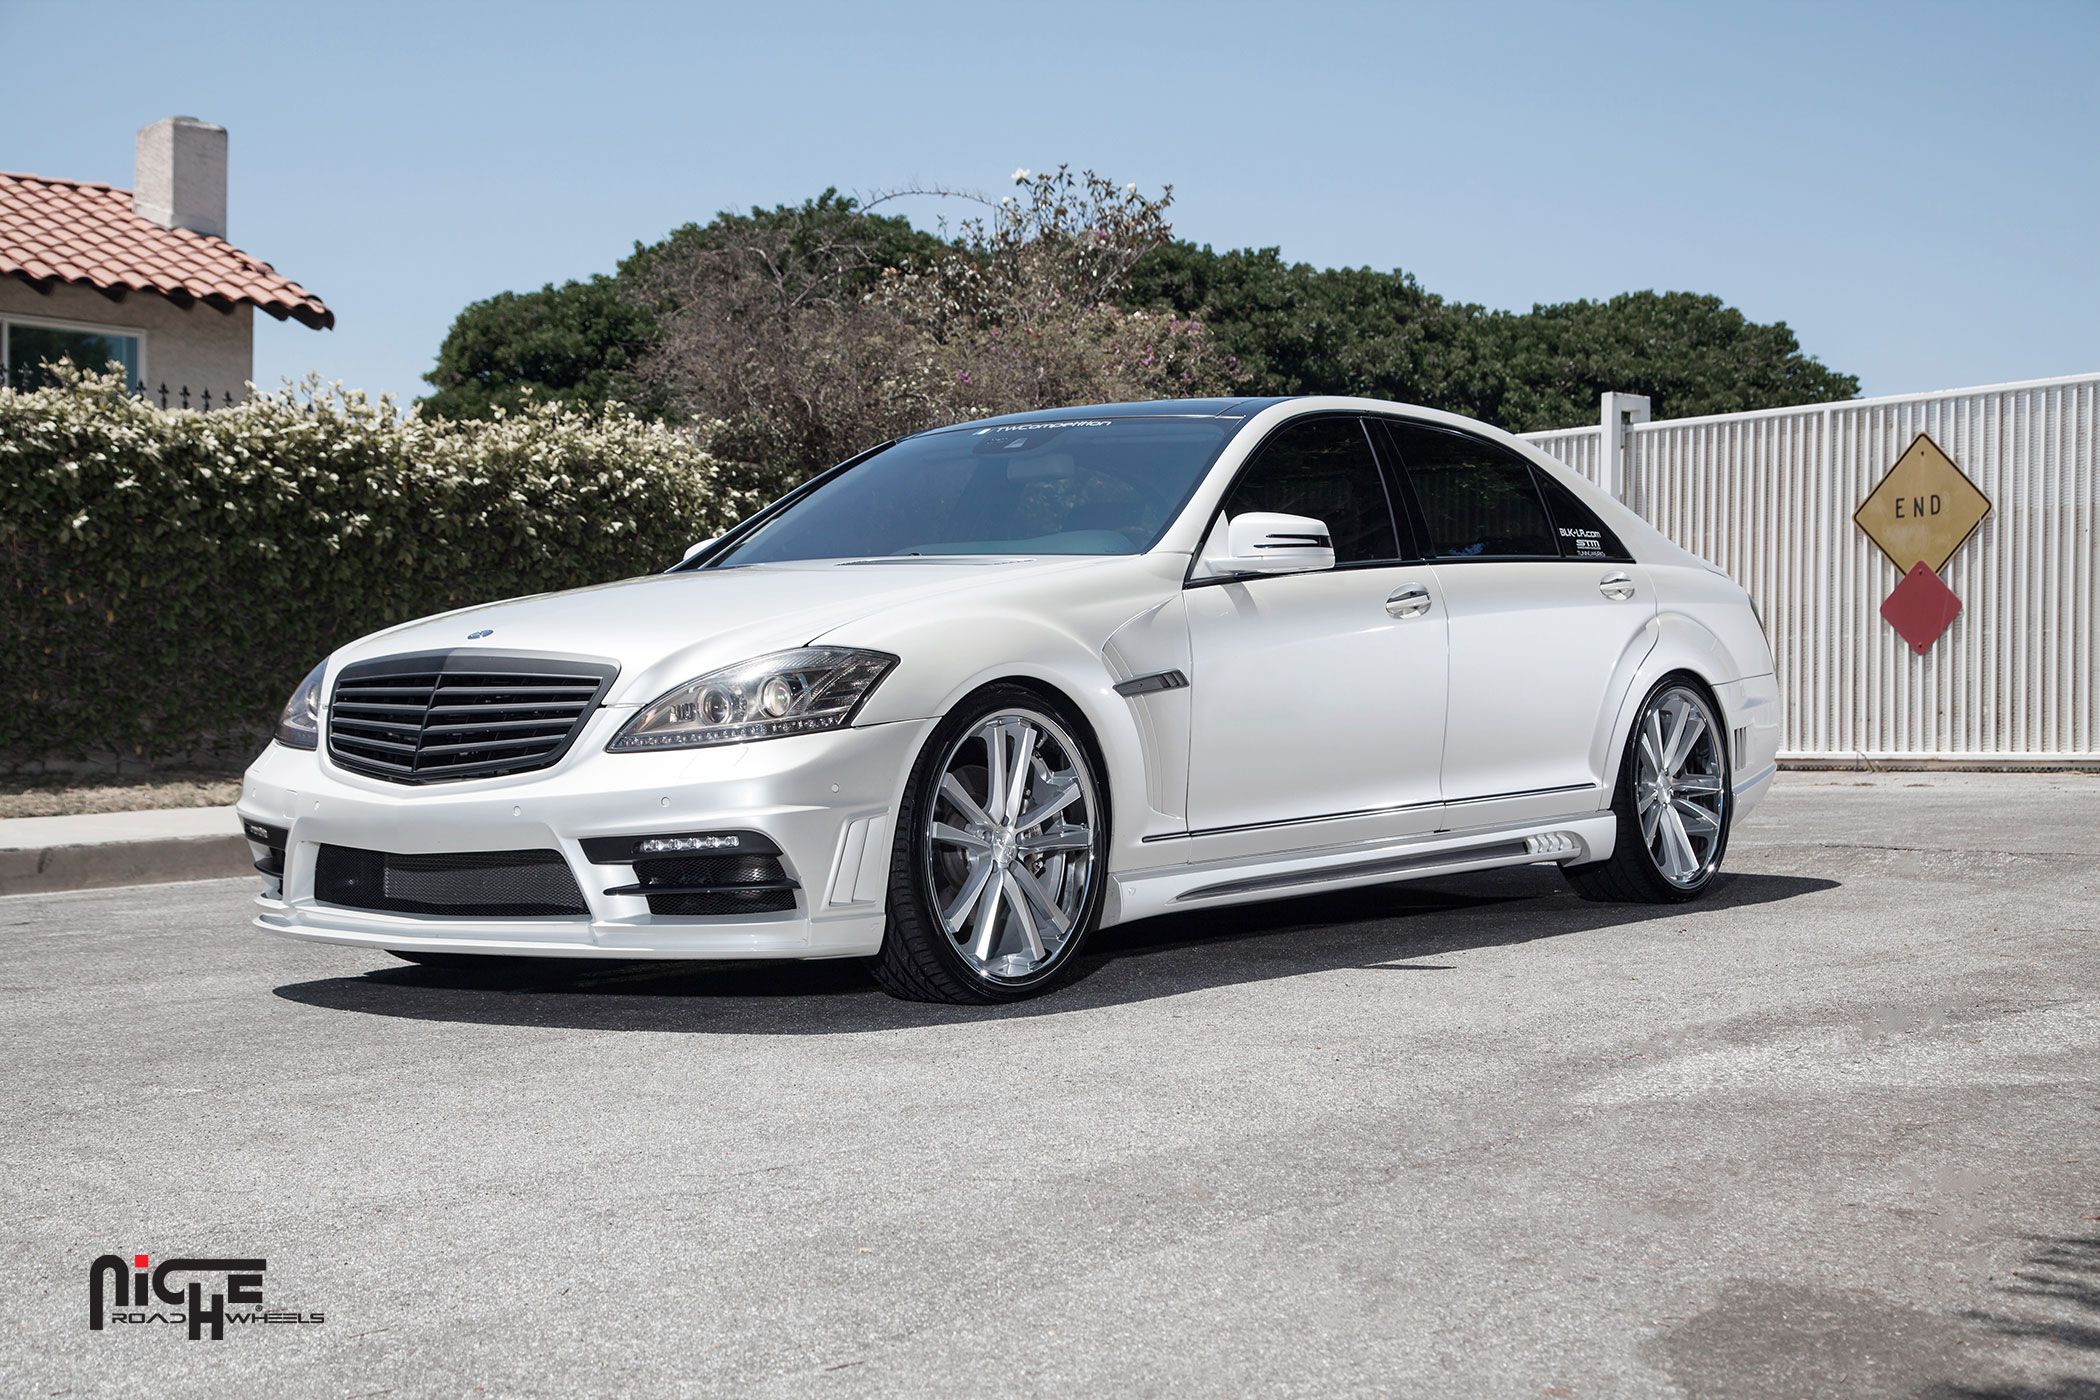 Mercedes benz s550 gallery mht wheels inc for Mercedes benz s550 rims